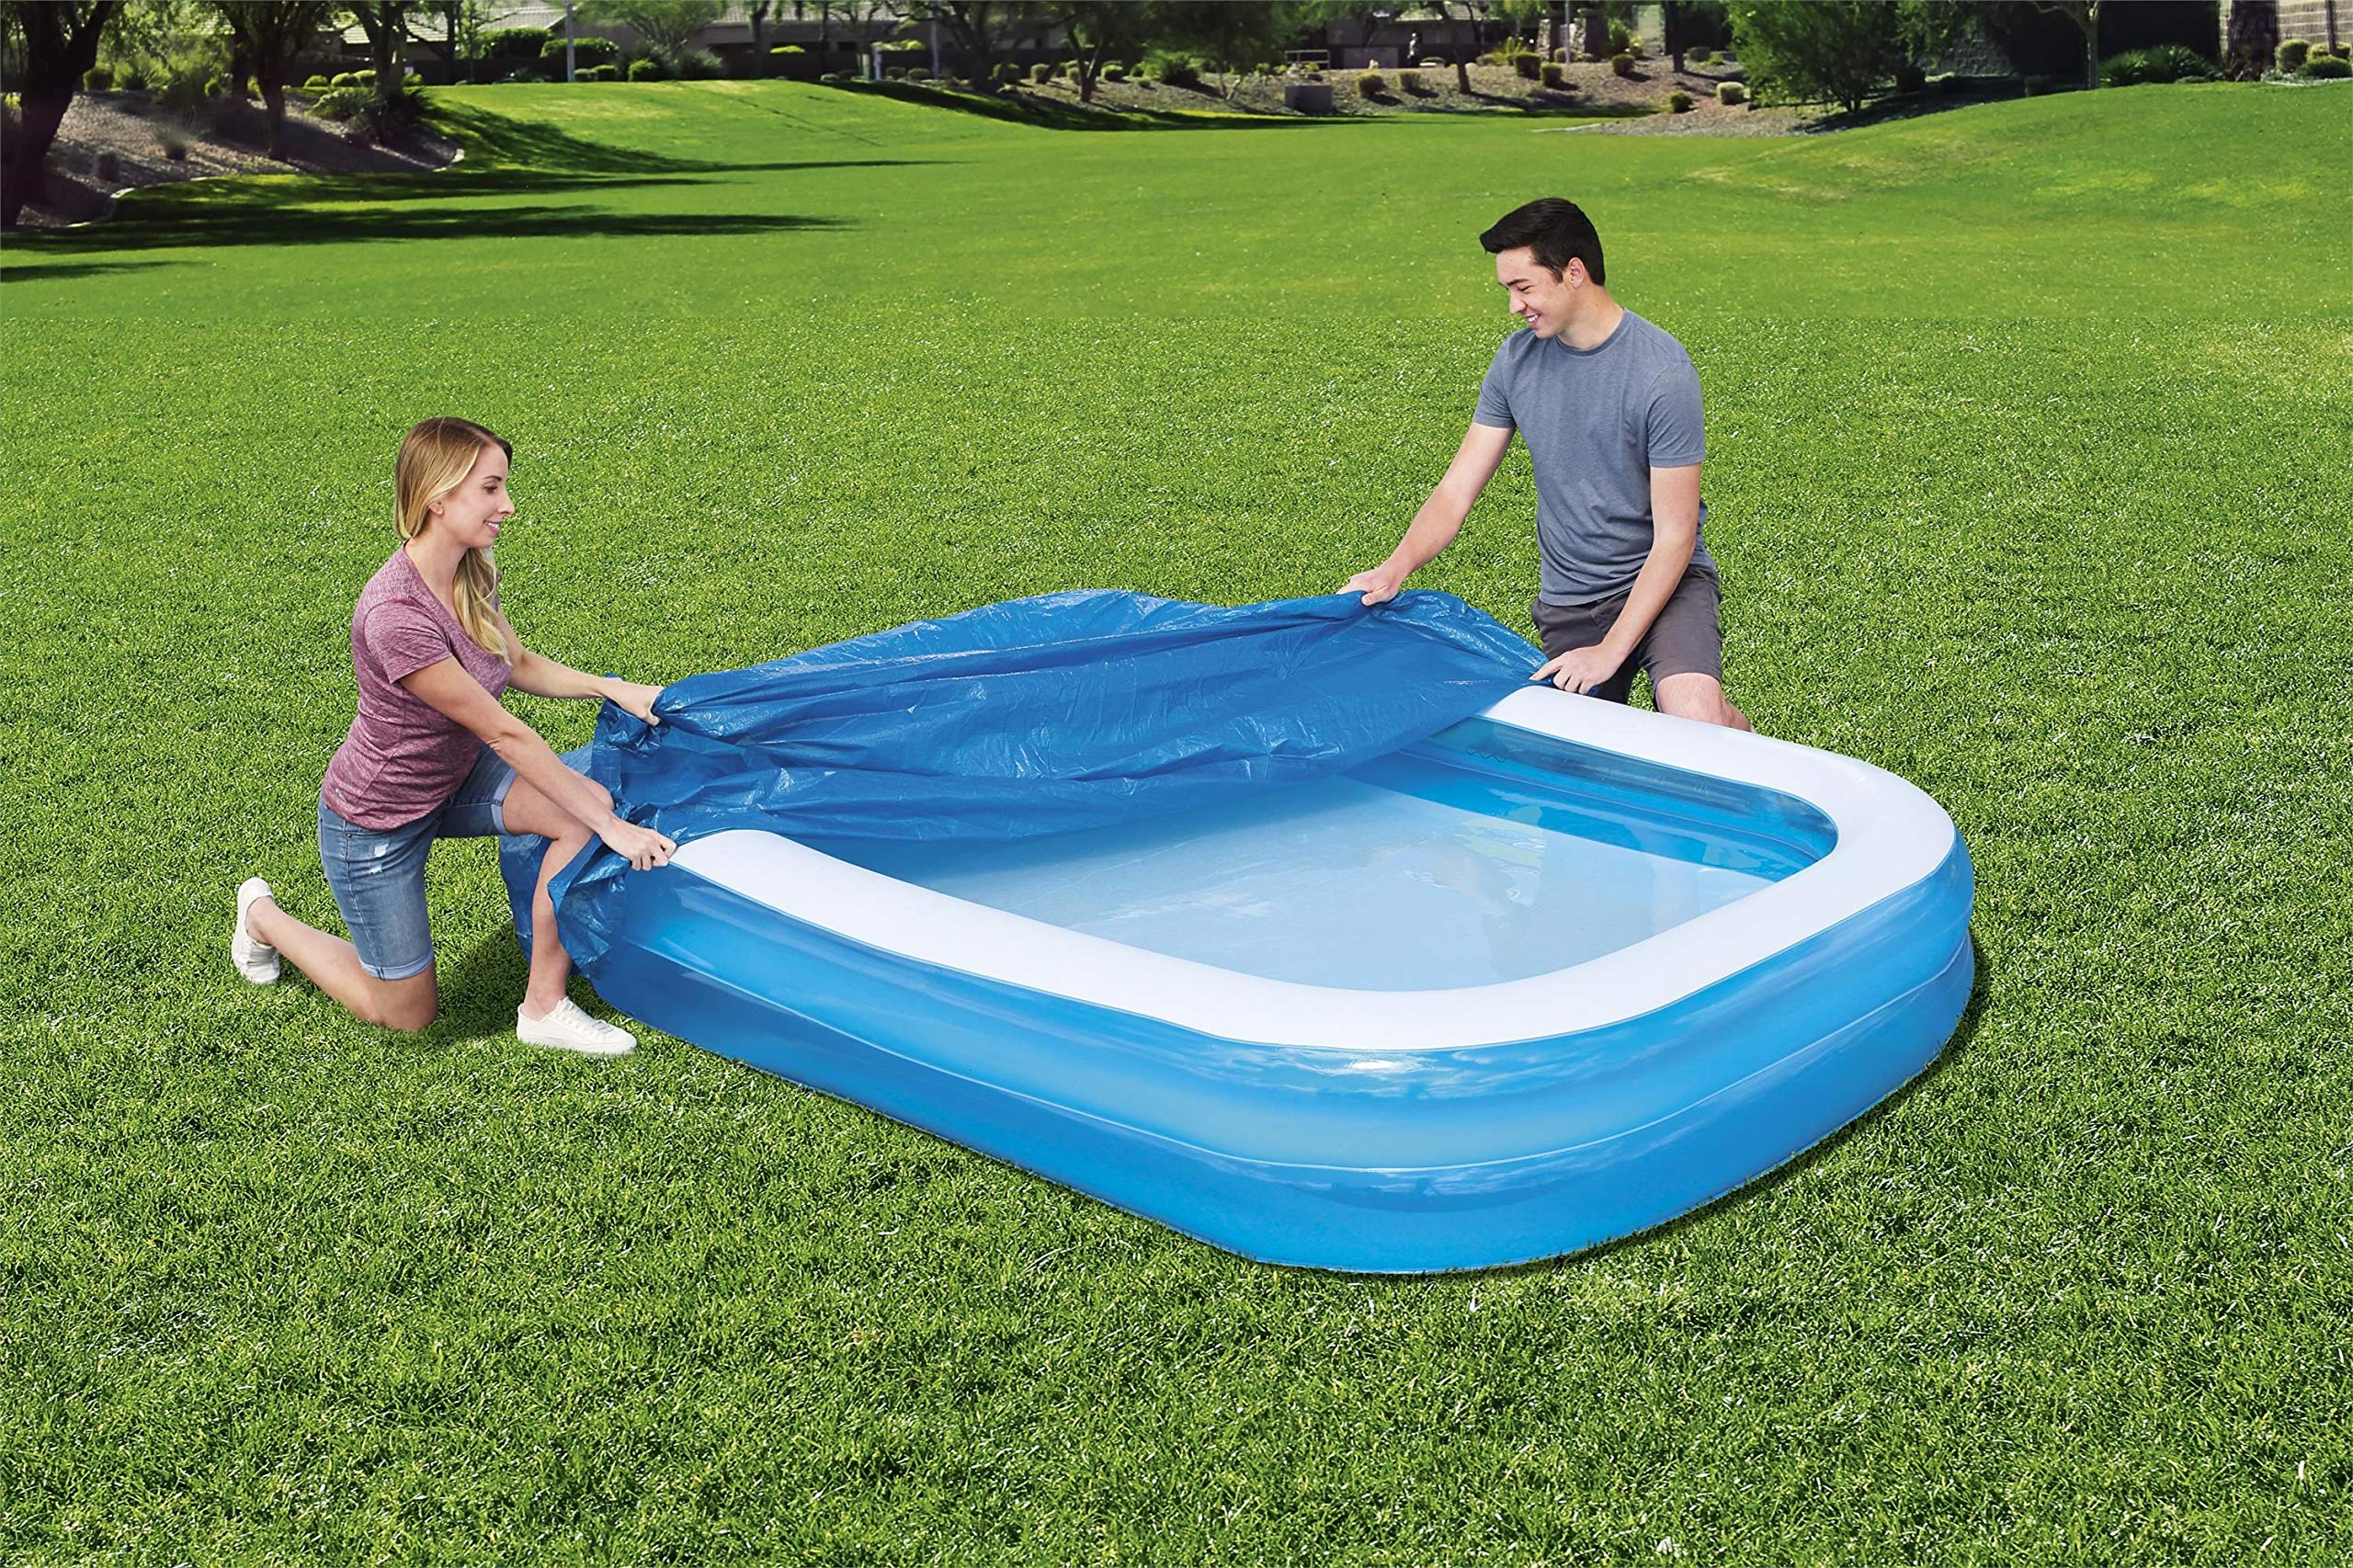 Bestway 8321626 Cobertor Para Piscina Rectangular Inflable 262x175 ...